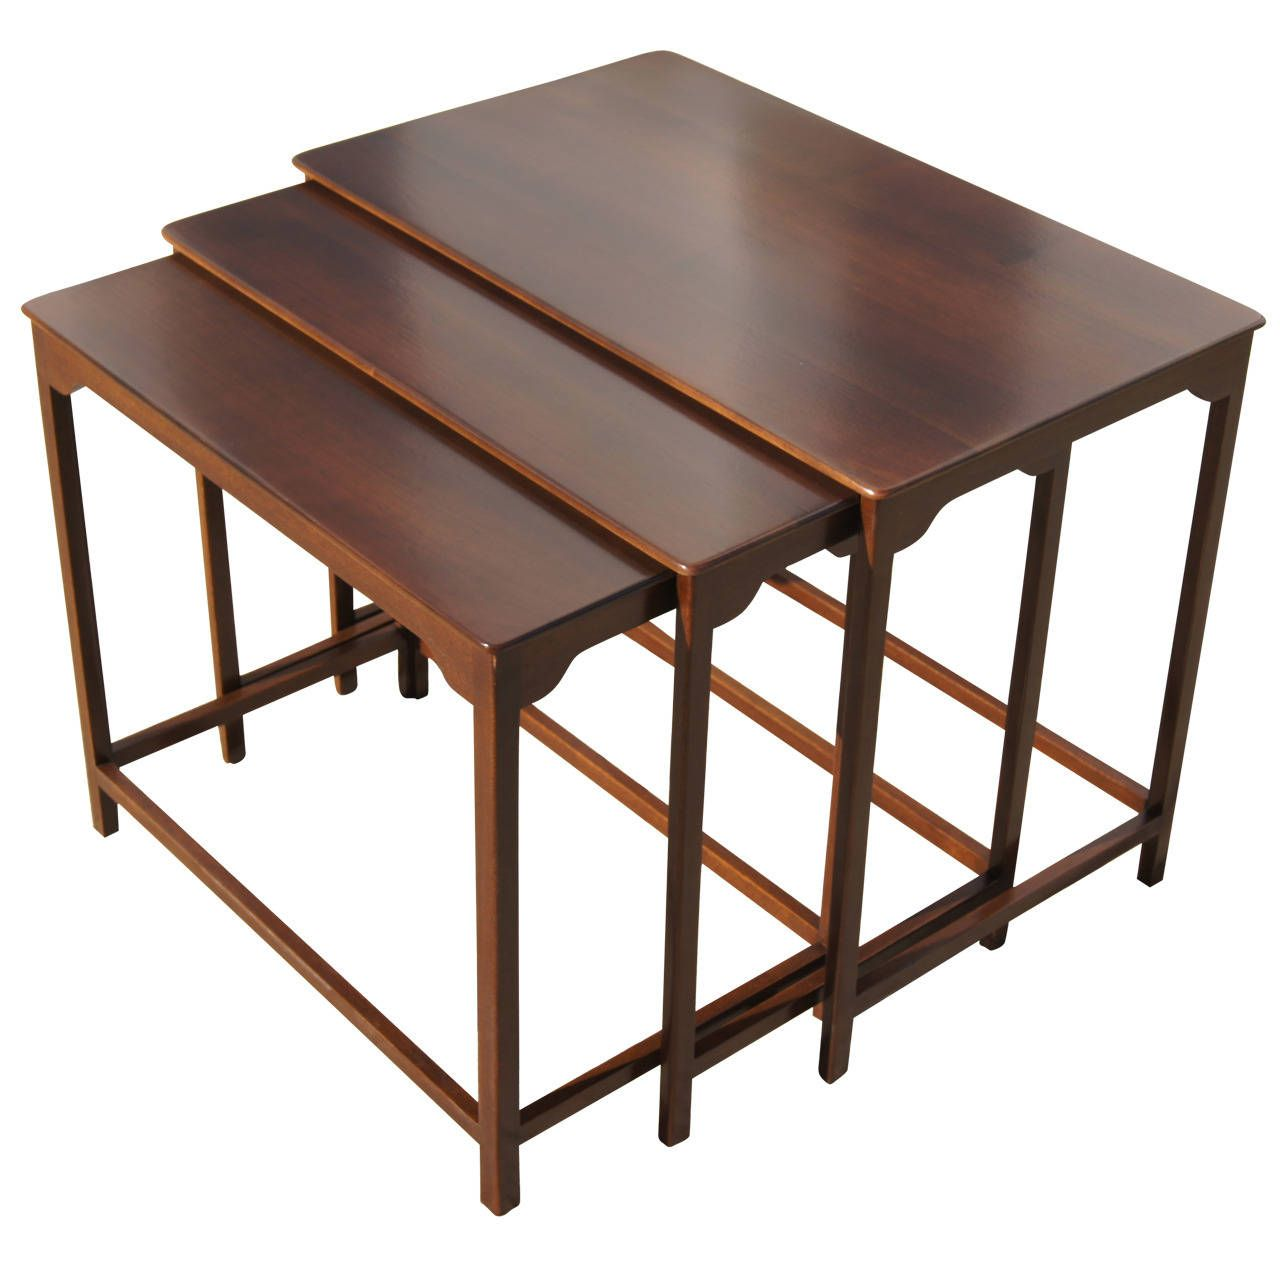 Set of Three Nesting Tables by Edward Wormley for Dunbar   From a unique collection of antique and modern nesting tables and stacking tables at https://www.1stdibs.com/furniture/tables/nesting-tables-stacking-tables/